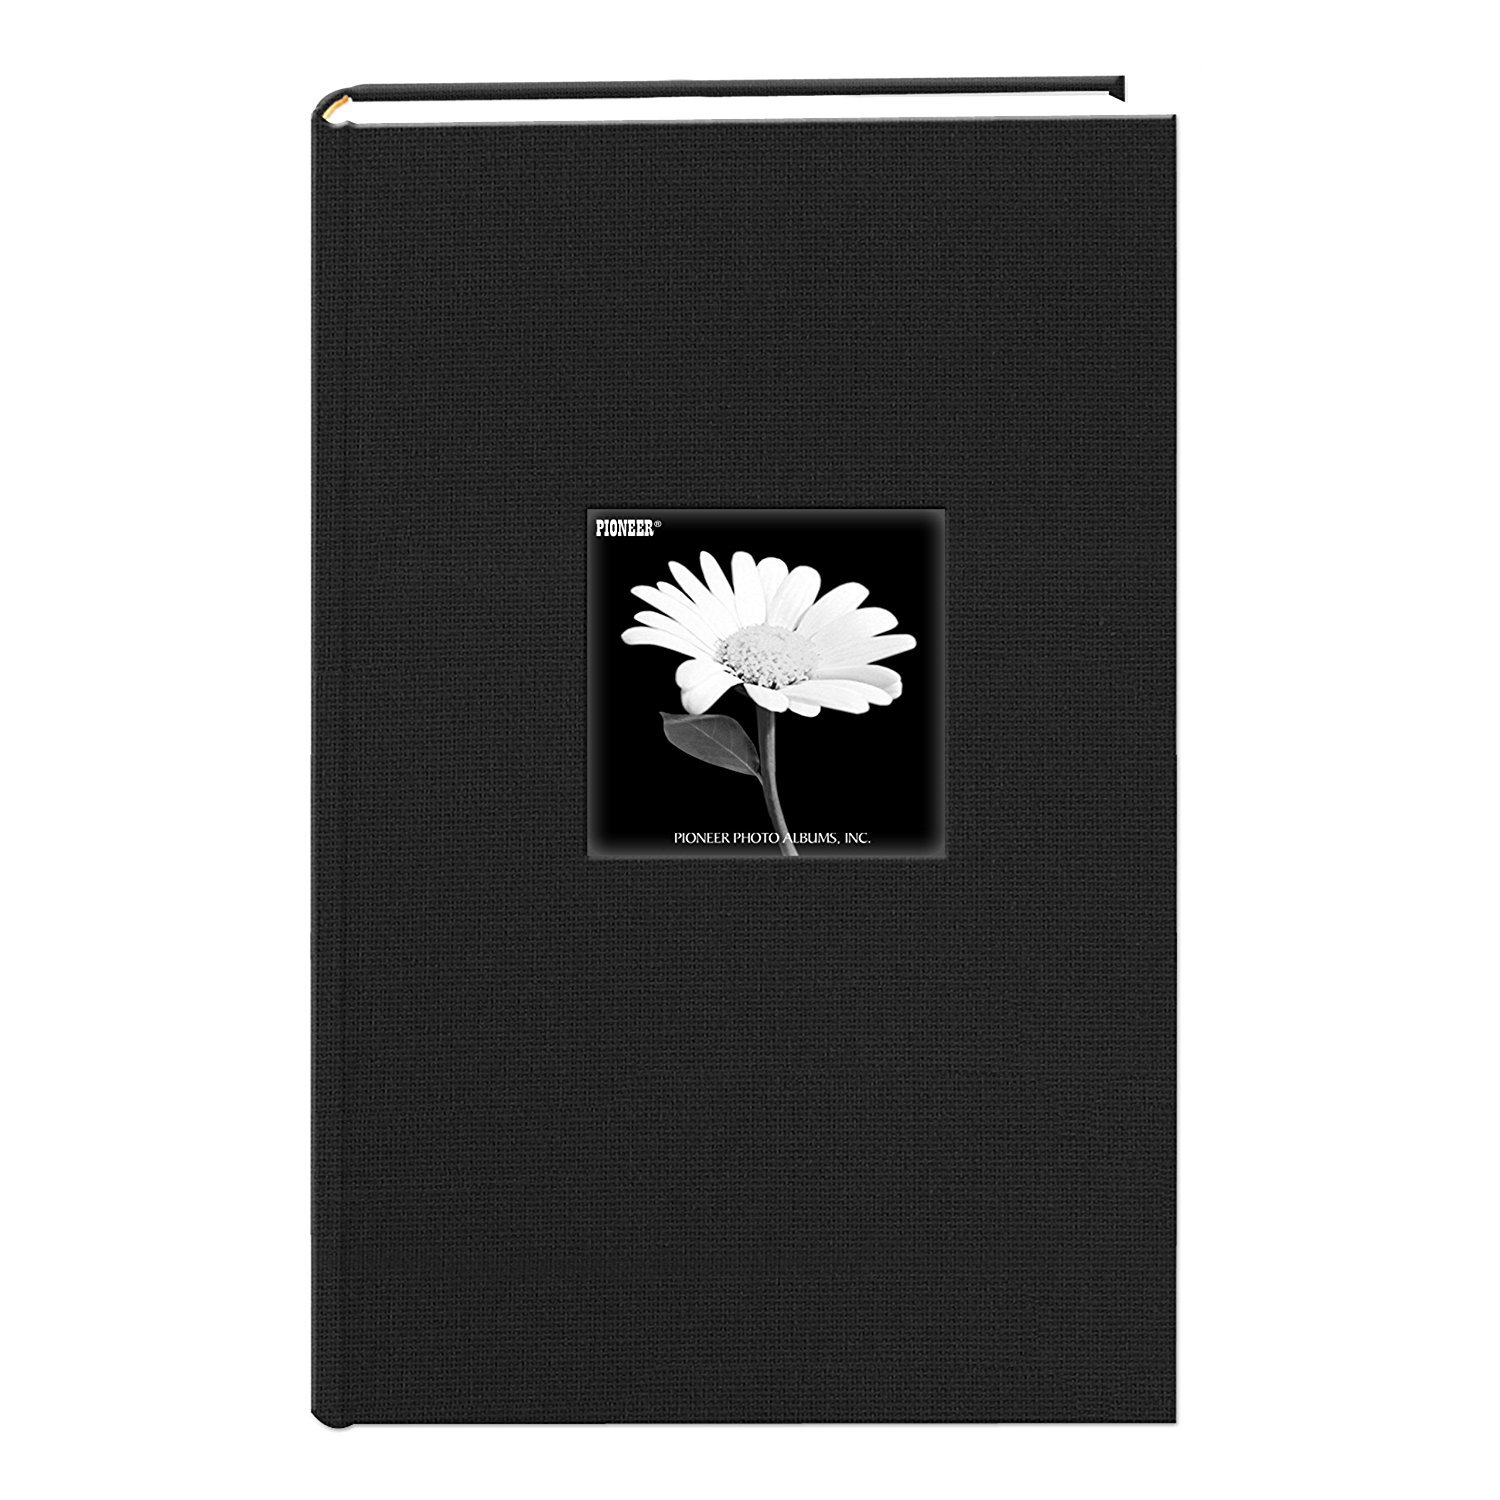 Fabric Frame Cover Photo Album 300 Pockets Hold 4x6 Photos, Deep Black Pioneer Photo Albums DA-300CBF/DB